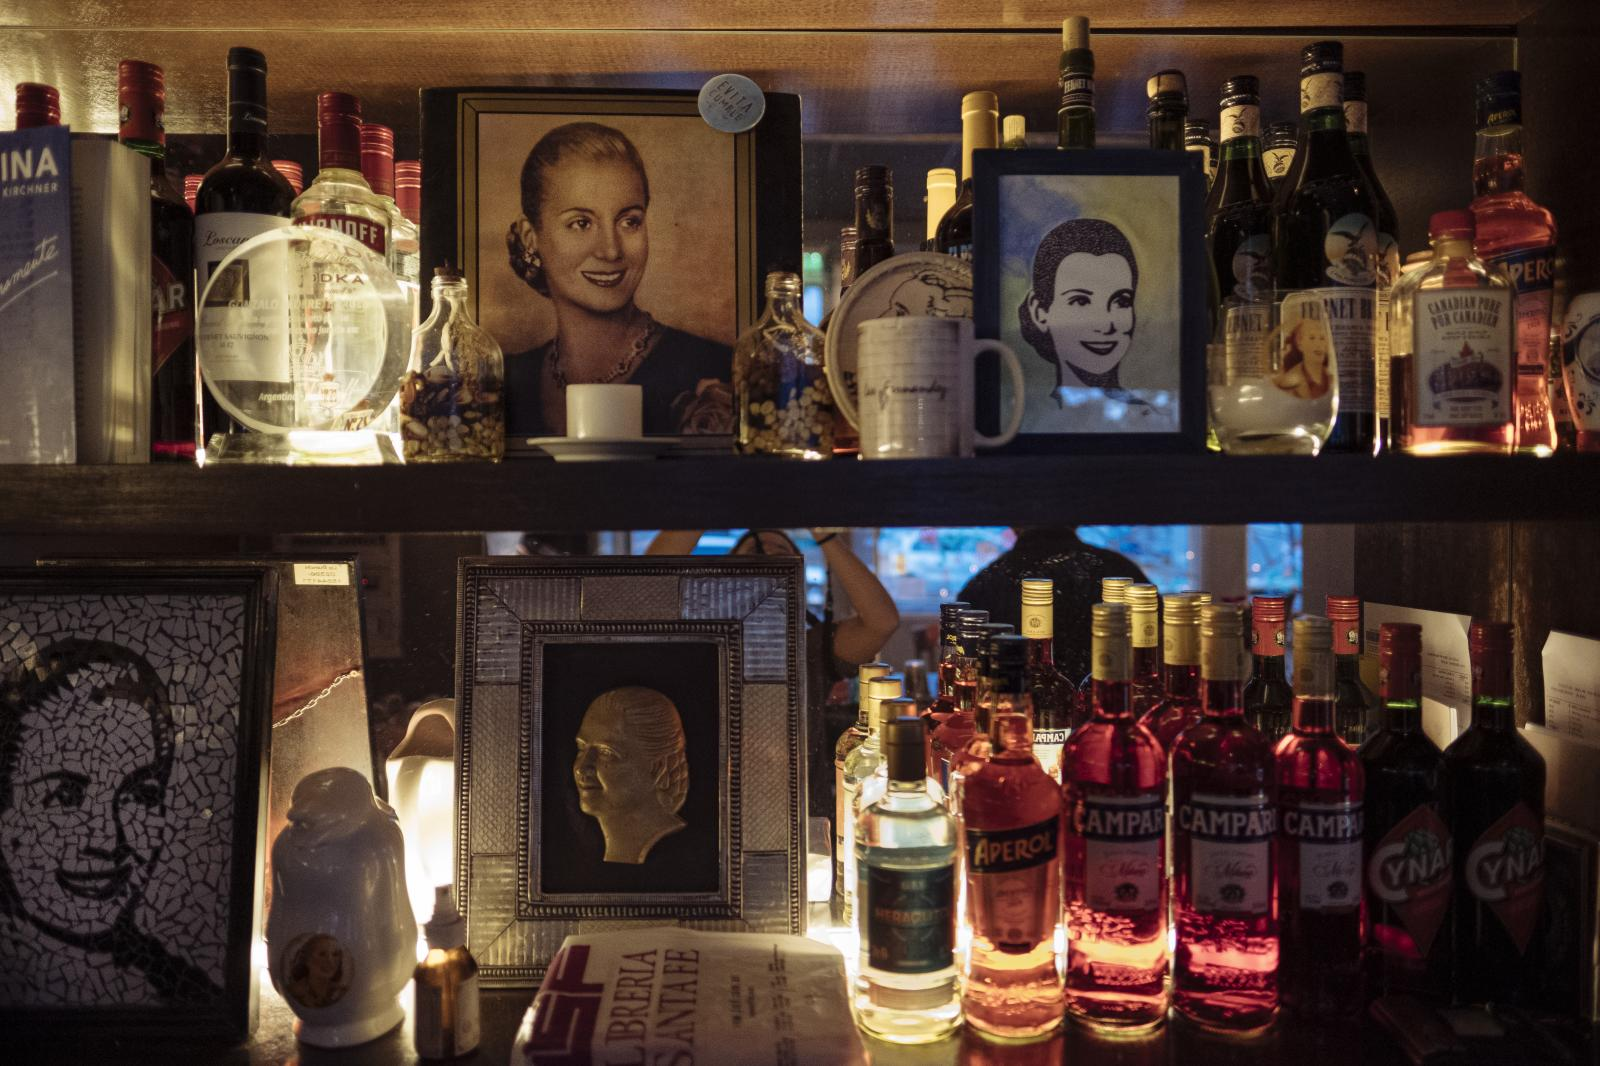 Evita's portraits stand on wine shelves at Santa Evita Restaurant, Buenos Aires, Argentina, on Wednesday, Dec. 4, 2019.